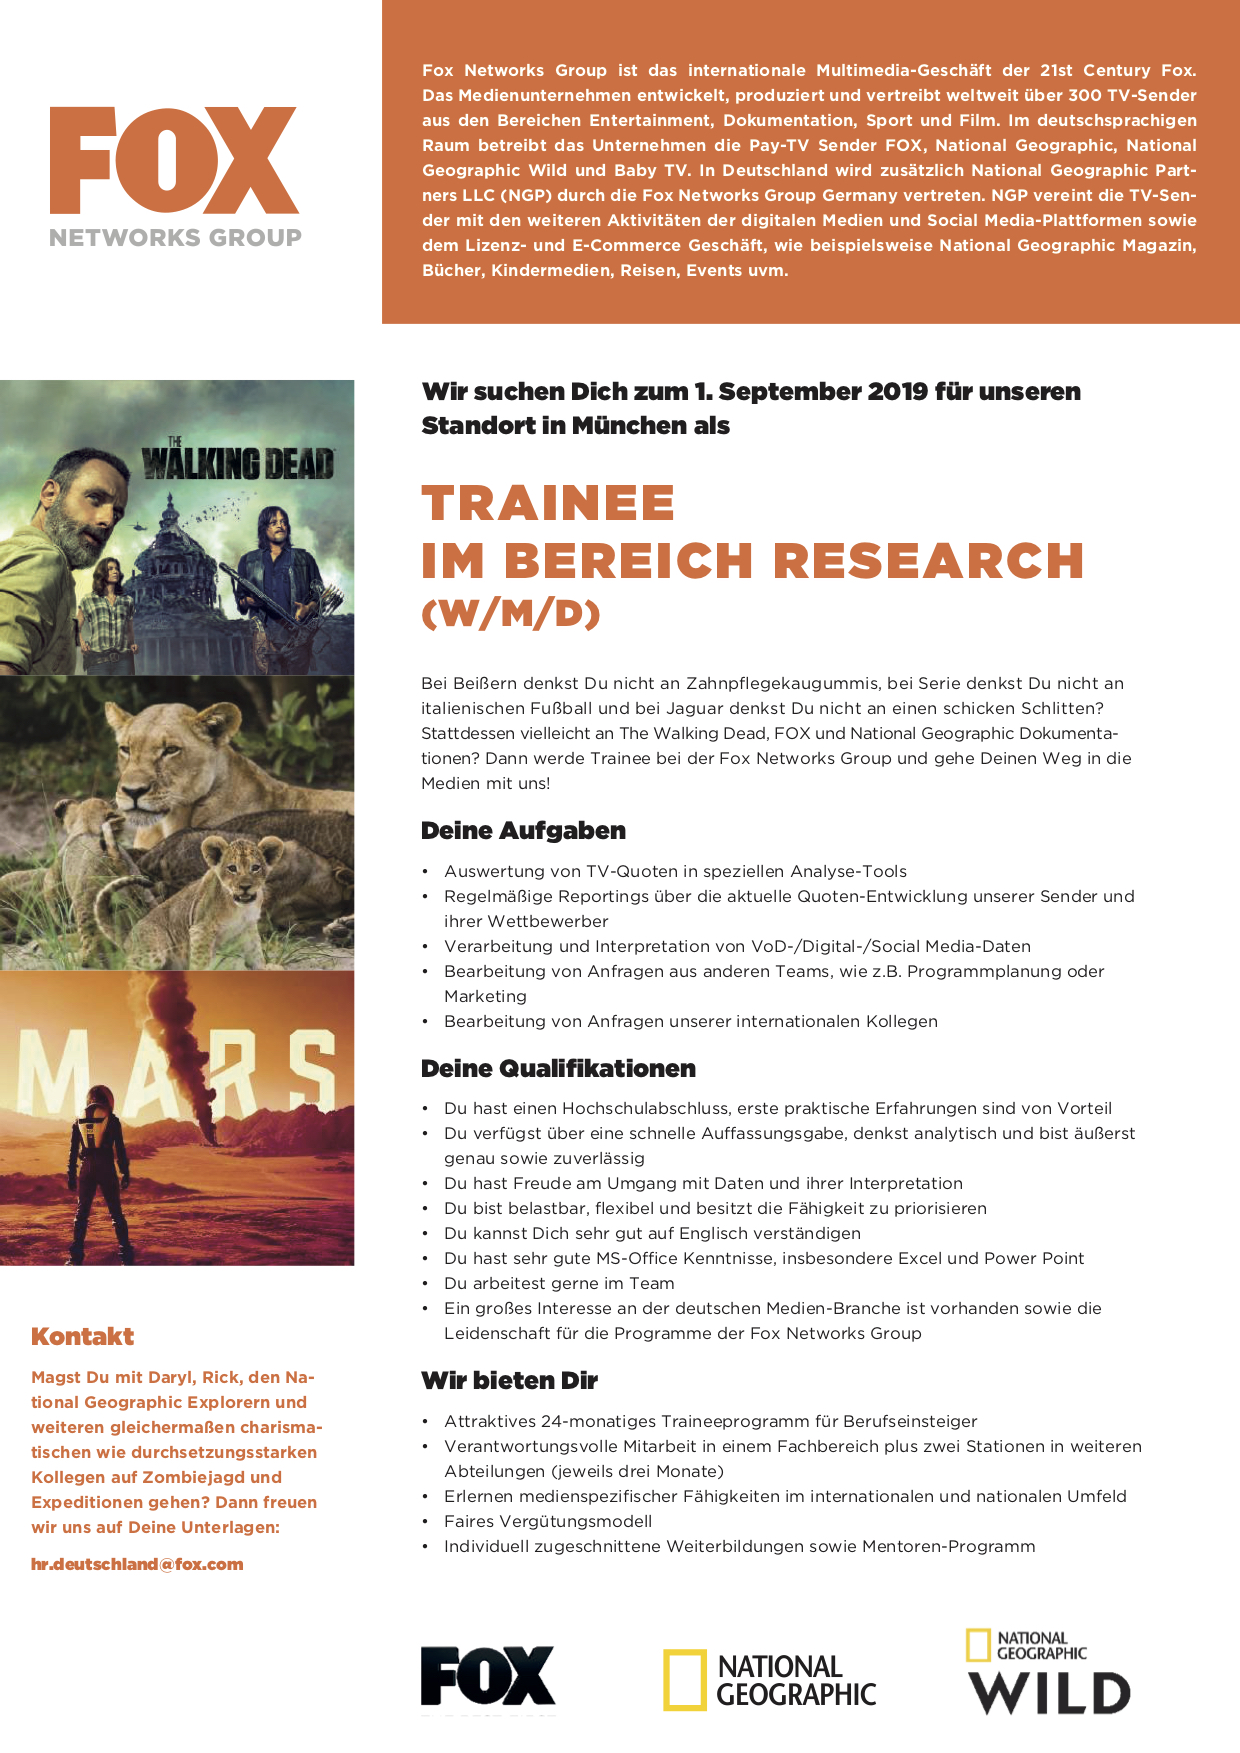 Trainee im Bereich Research (w/m/d)